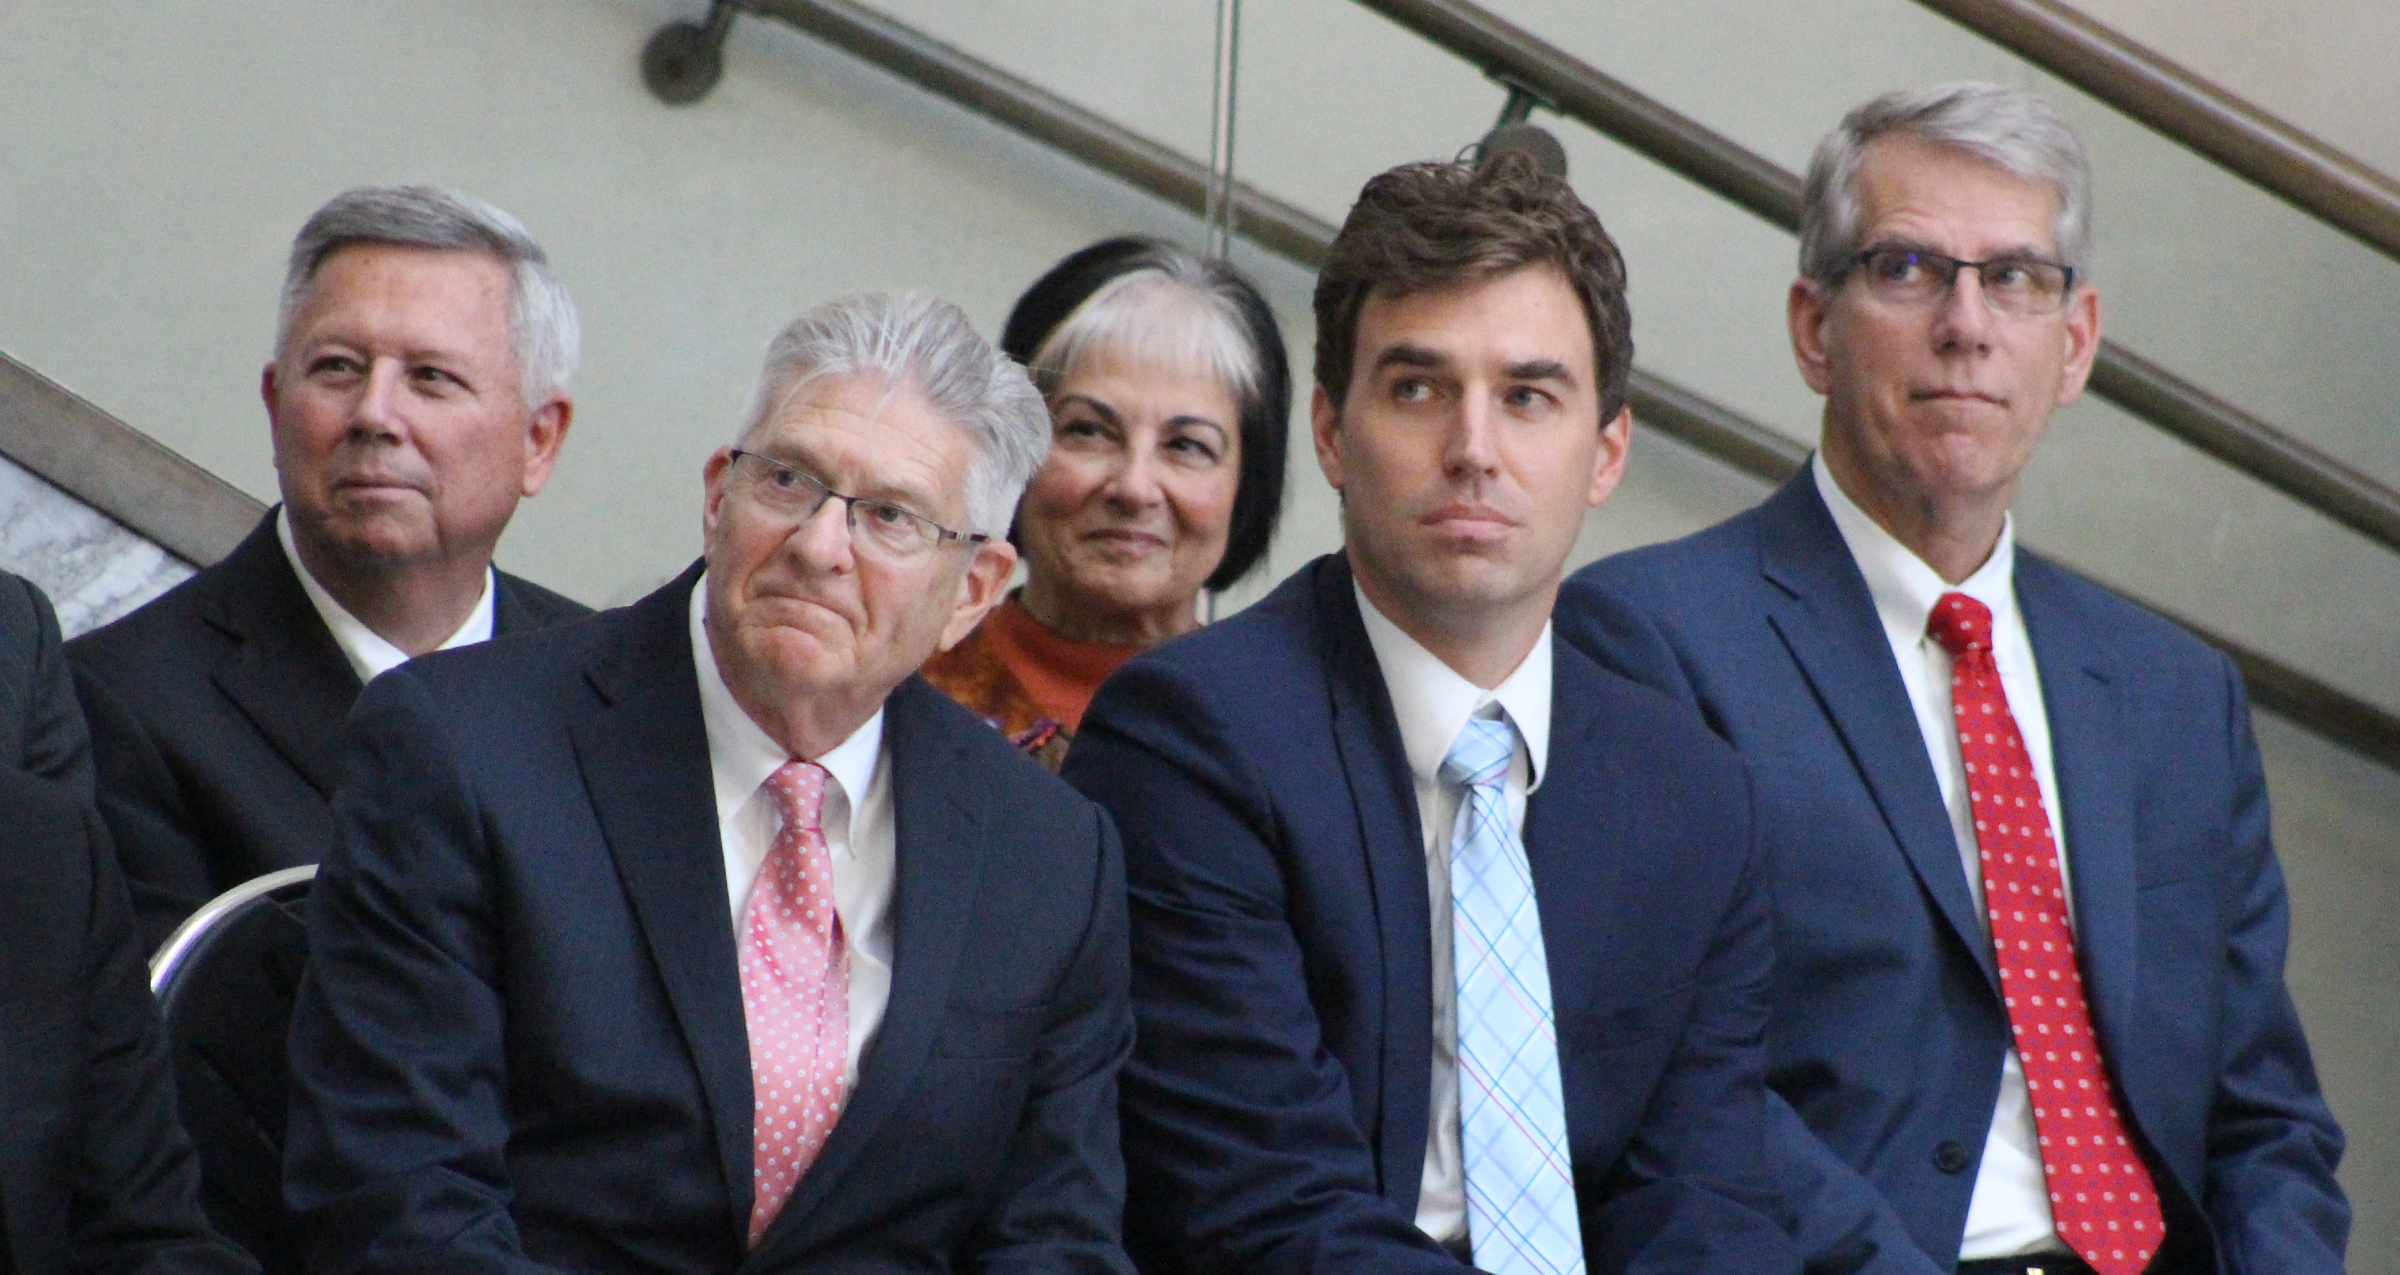 Dignities at Brian C. Buescher's investiture ceremony included state and federal judges along with several current and former state and federal officeholders. (Photo by Scott Stewart)